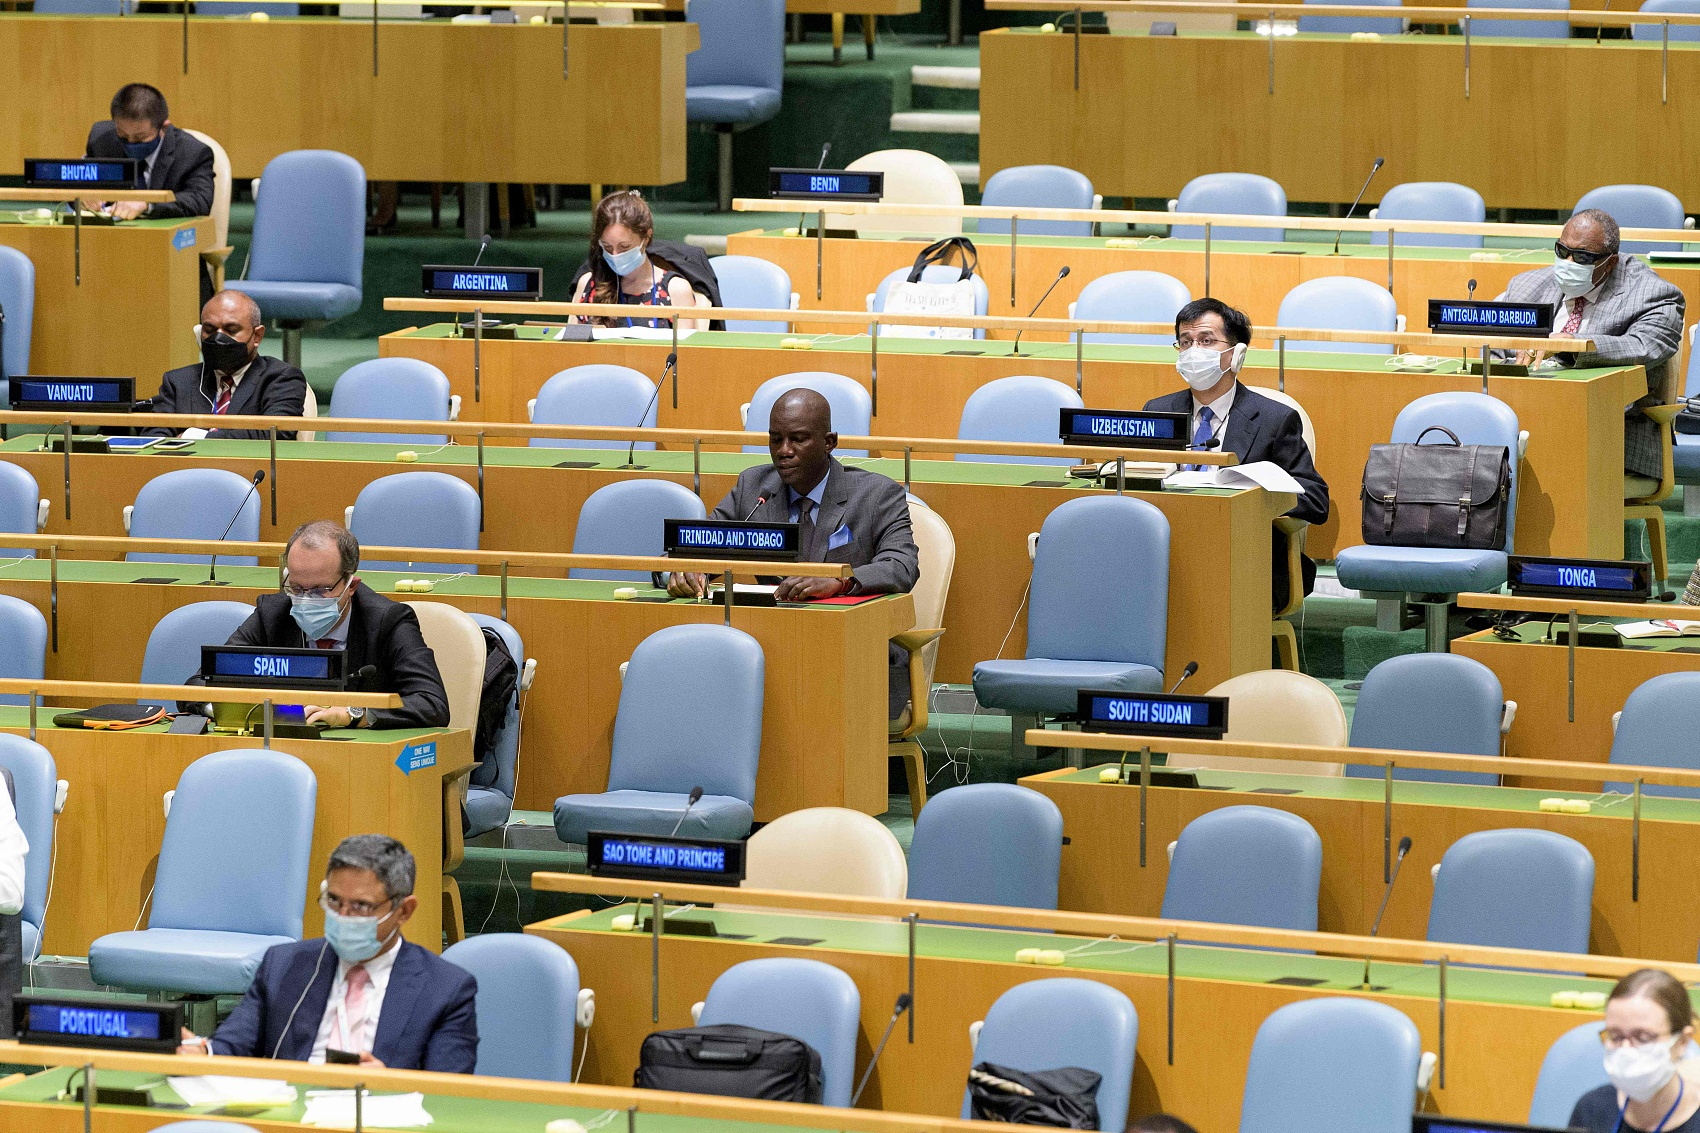 General Debate of UNGA 75 ends in strong support for multilateralism, UN